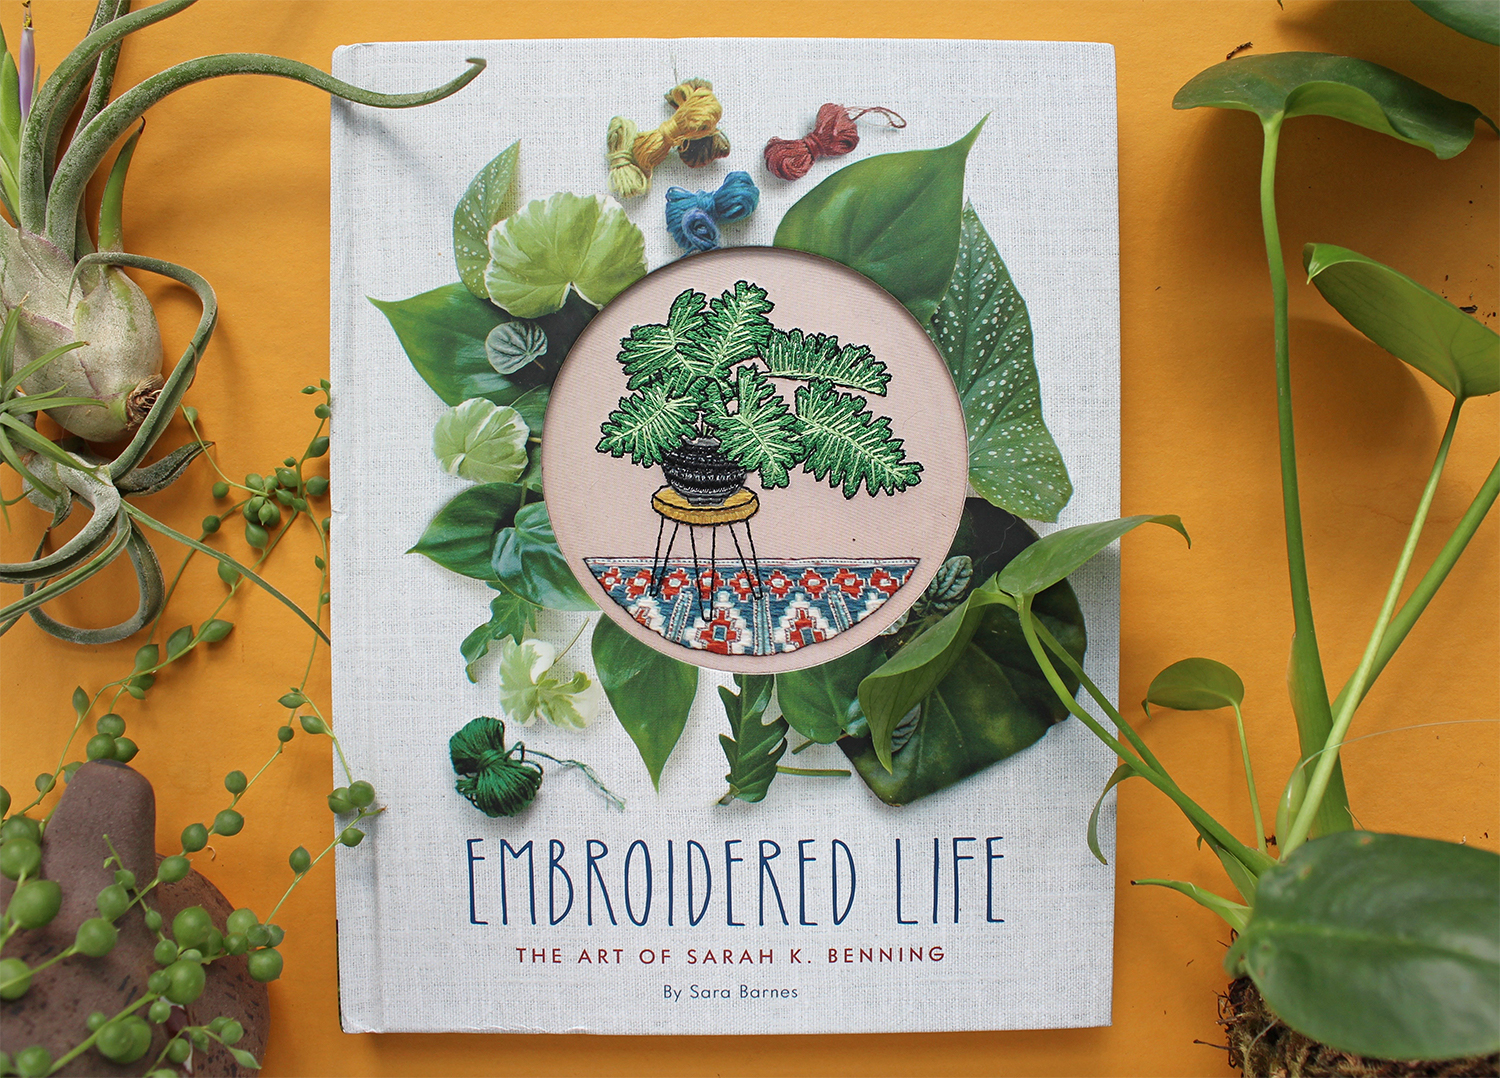 Embroidered Book, an embroidery book about Sarah K. Benning